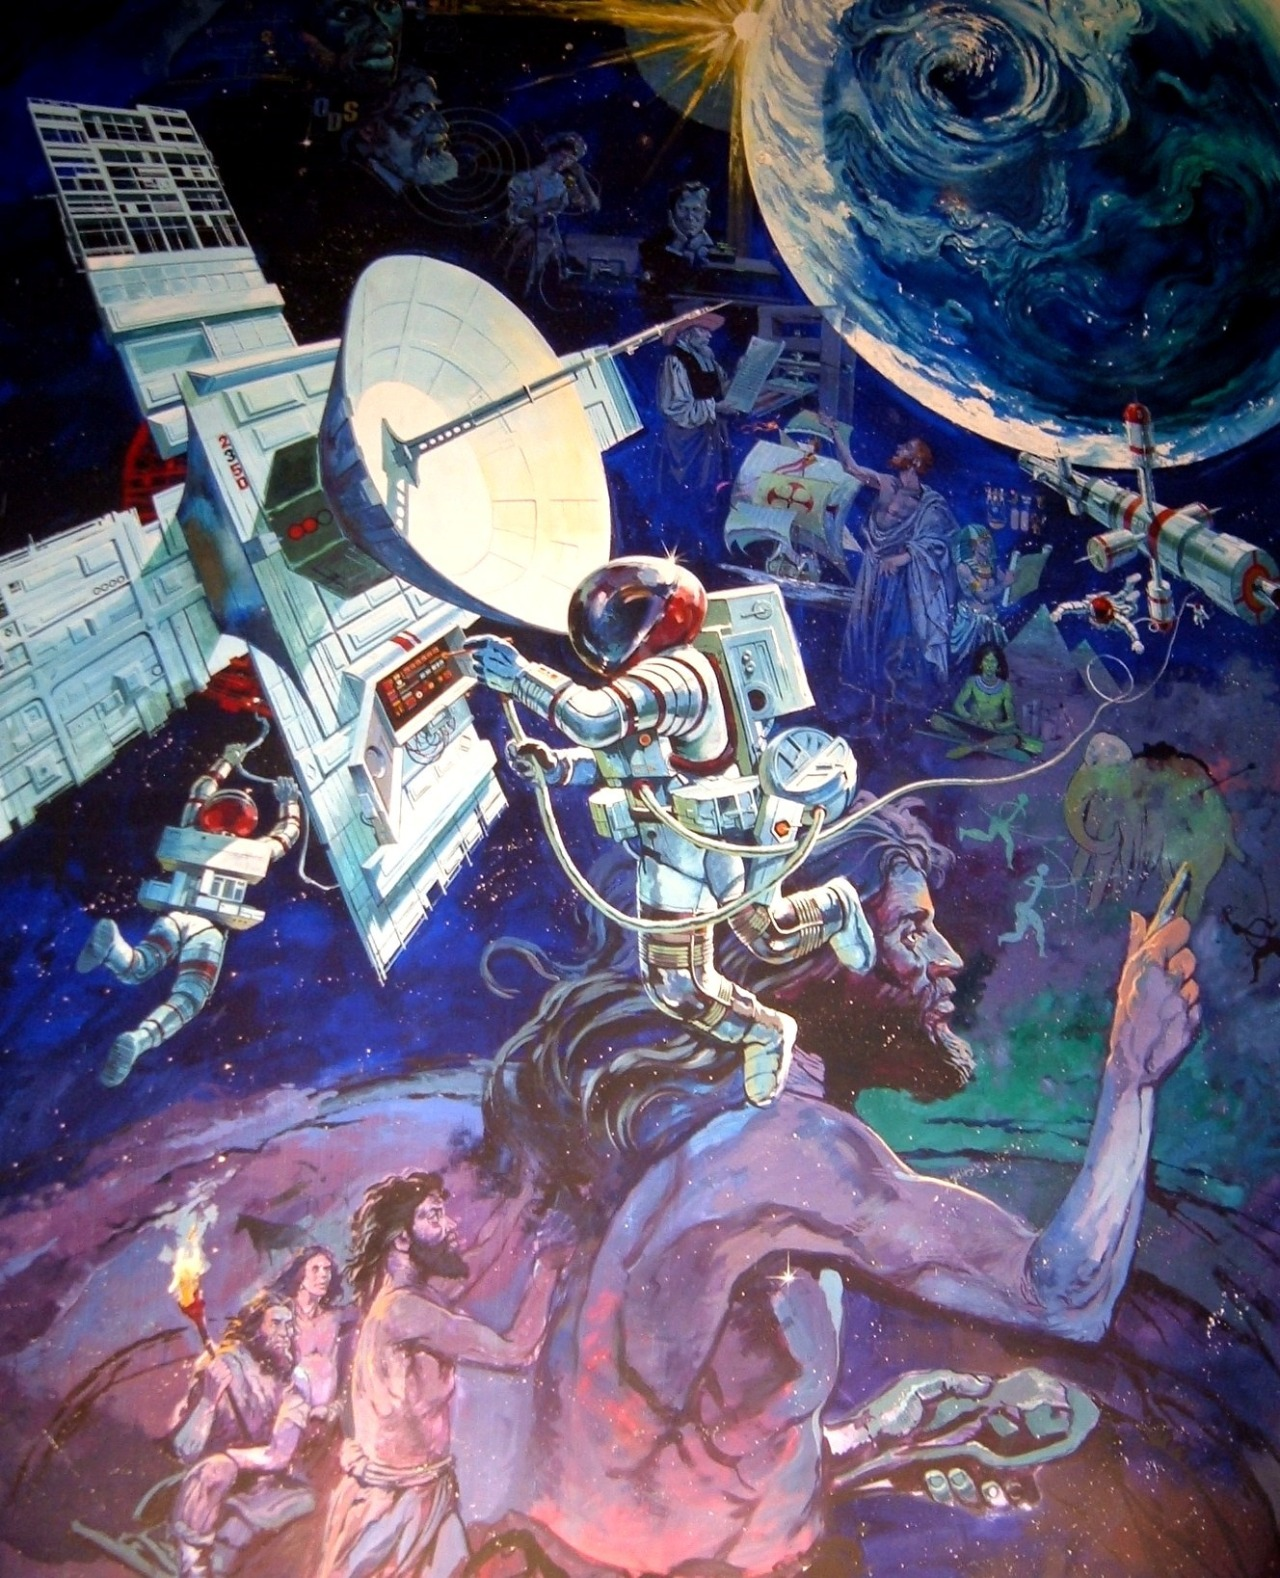 The full mural at disney world 39 s spaceship earth by for Disney world mural